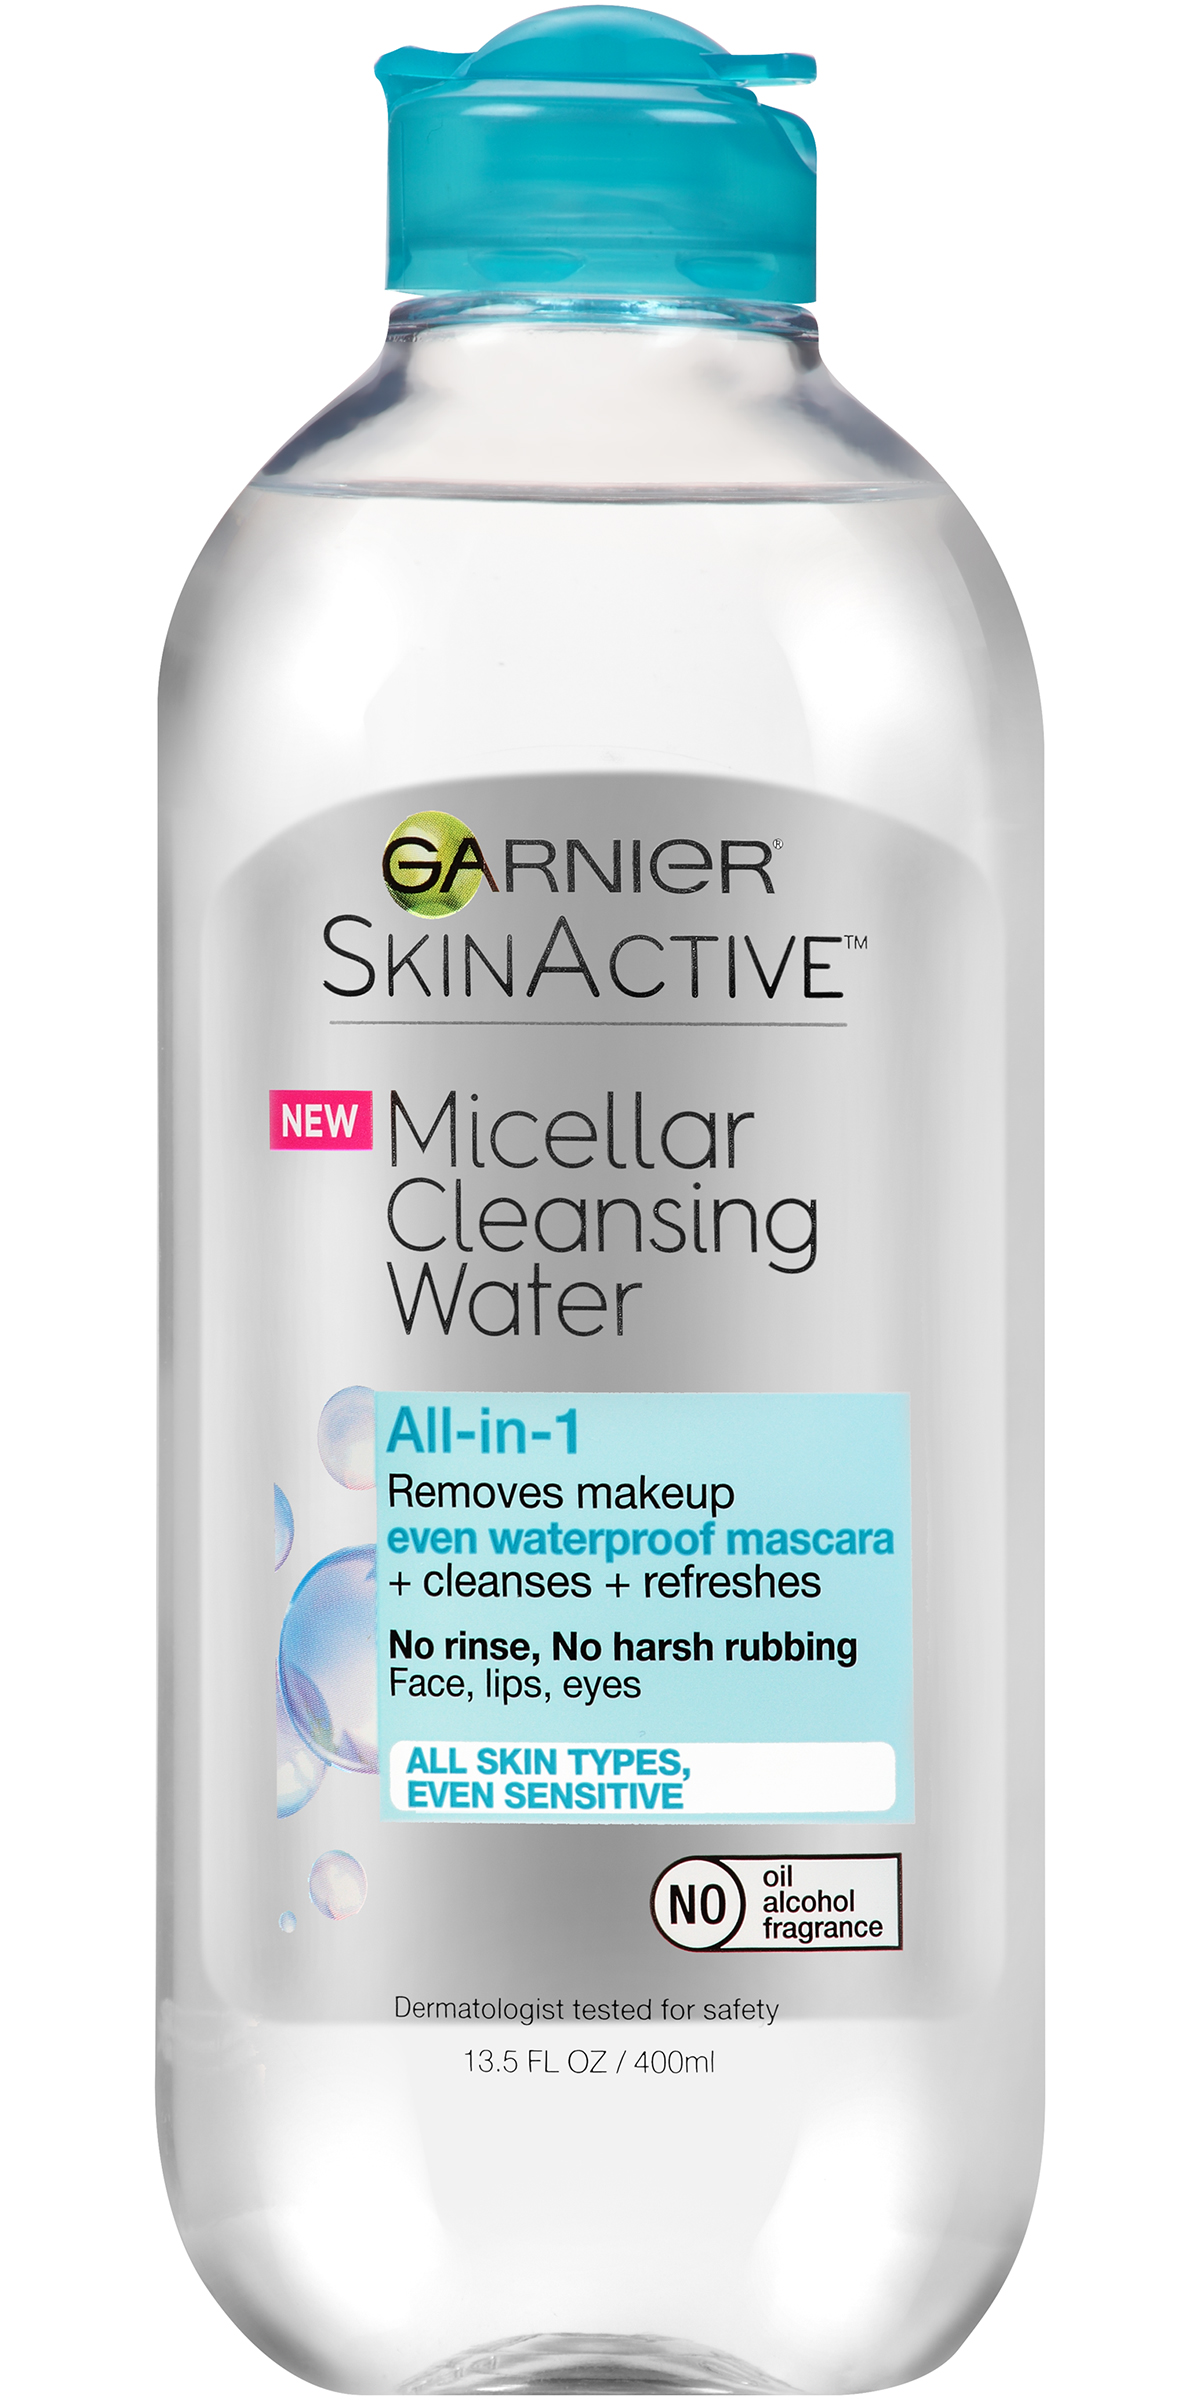 garnier skinactive all in 1 micellar cleansing water 13 5fl oz micellar cleansing water all in 1 cleanser waterproof makeup